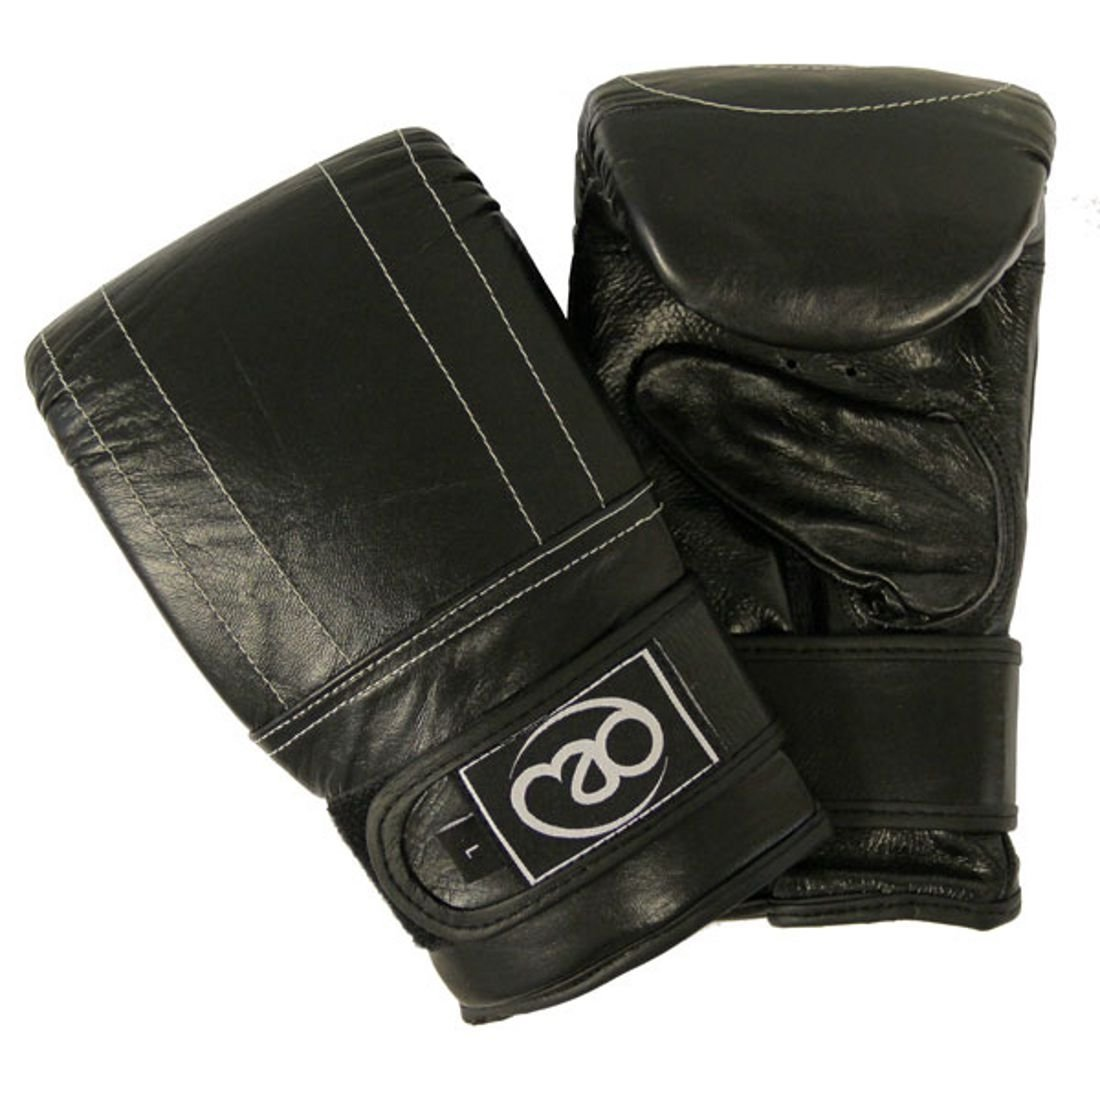 Image of Boxing Mad Boxing Leather Bag Mitt